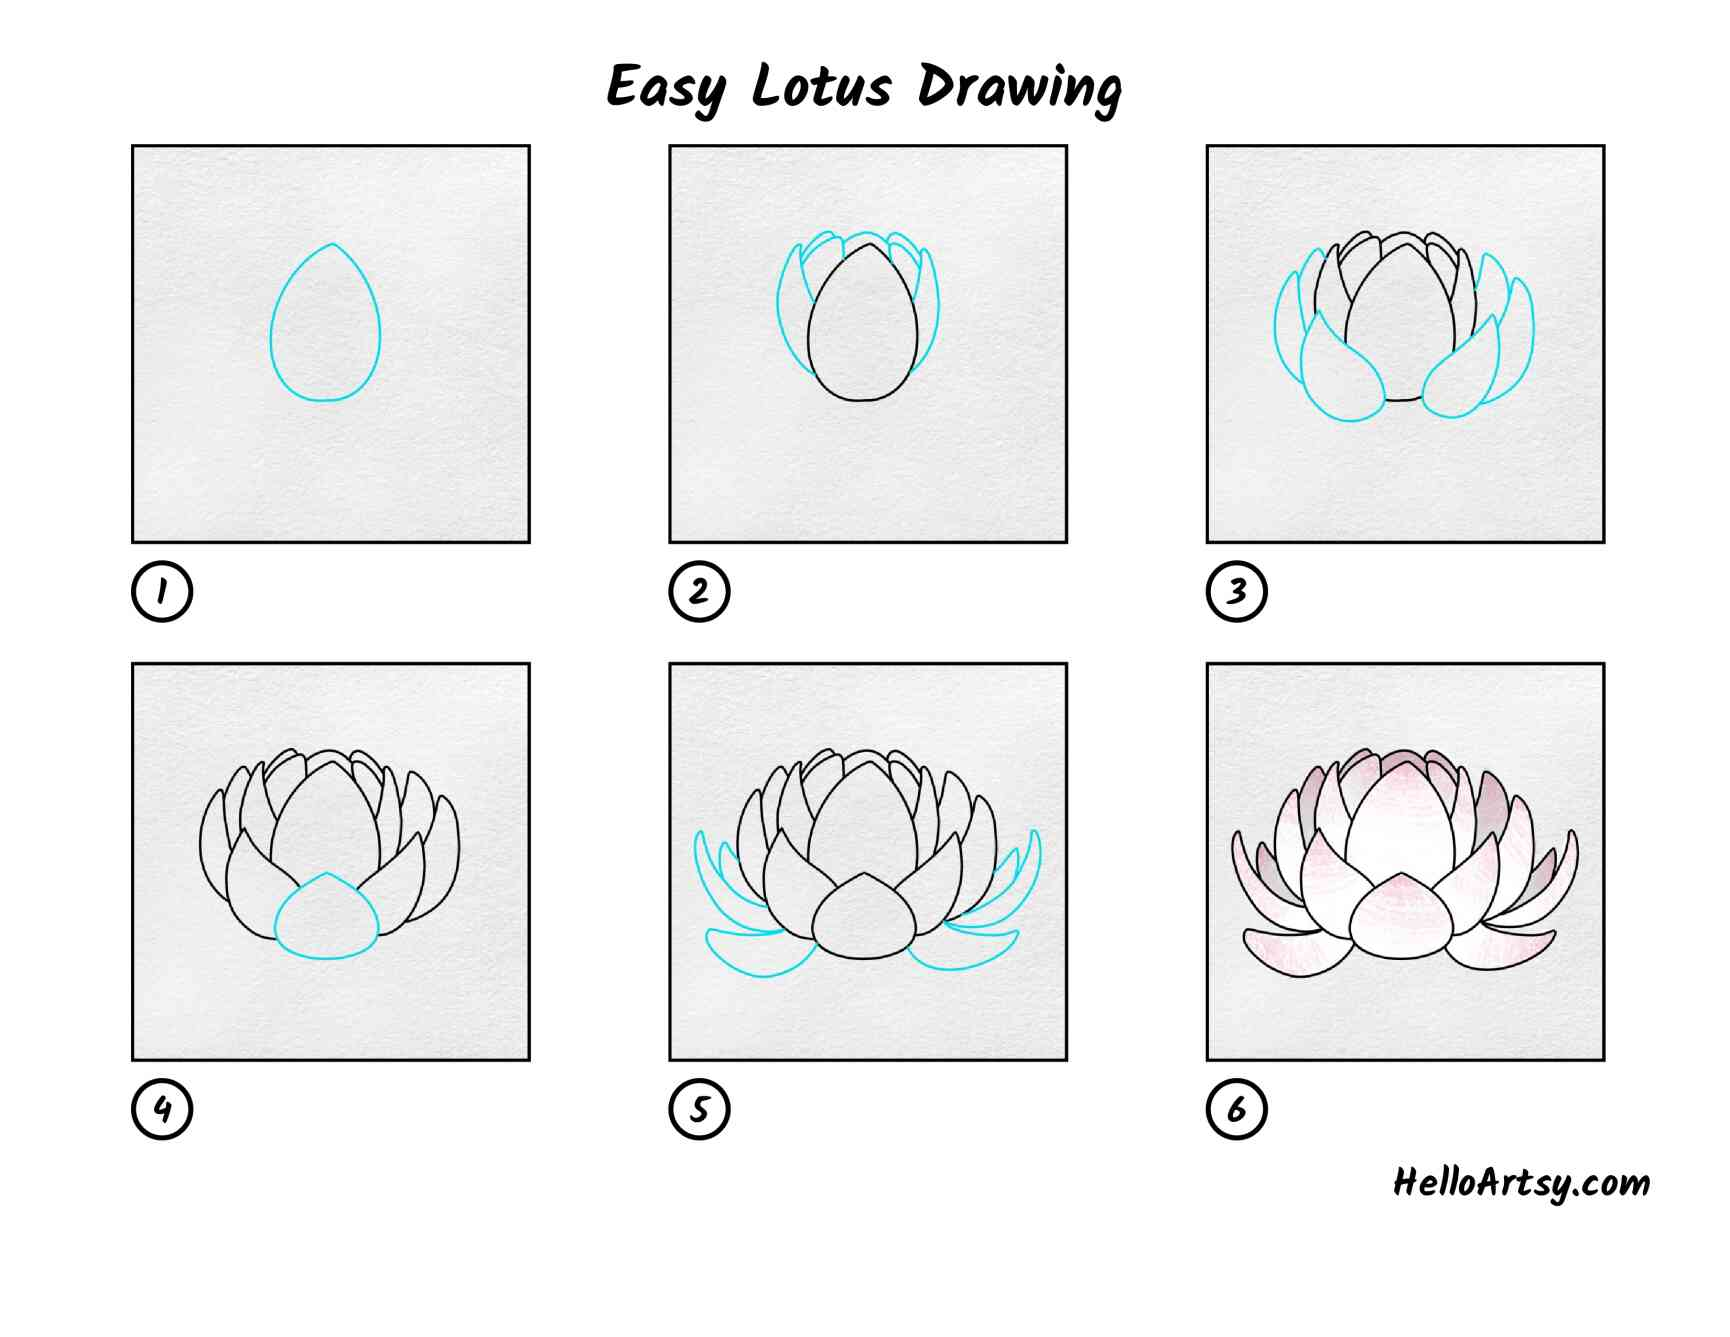 Easy Lotus Drawing: All Steps